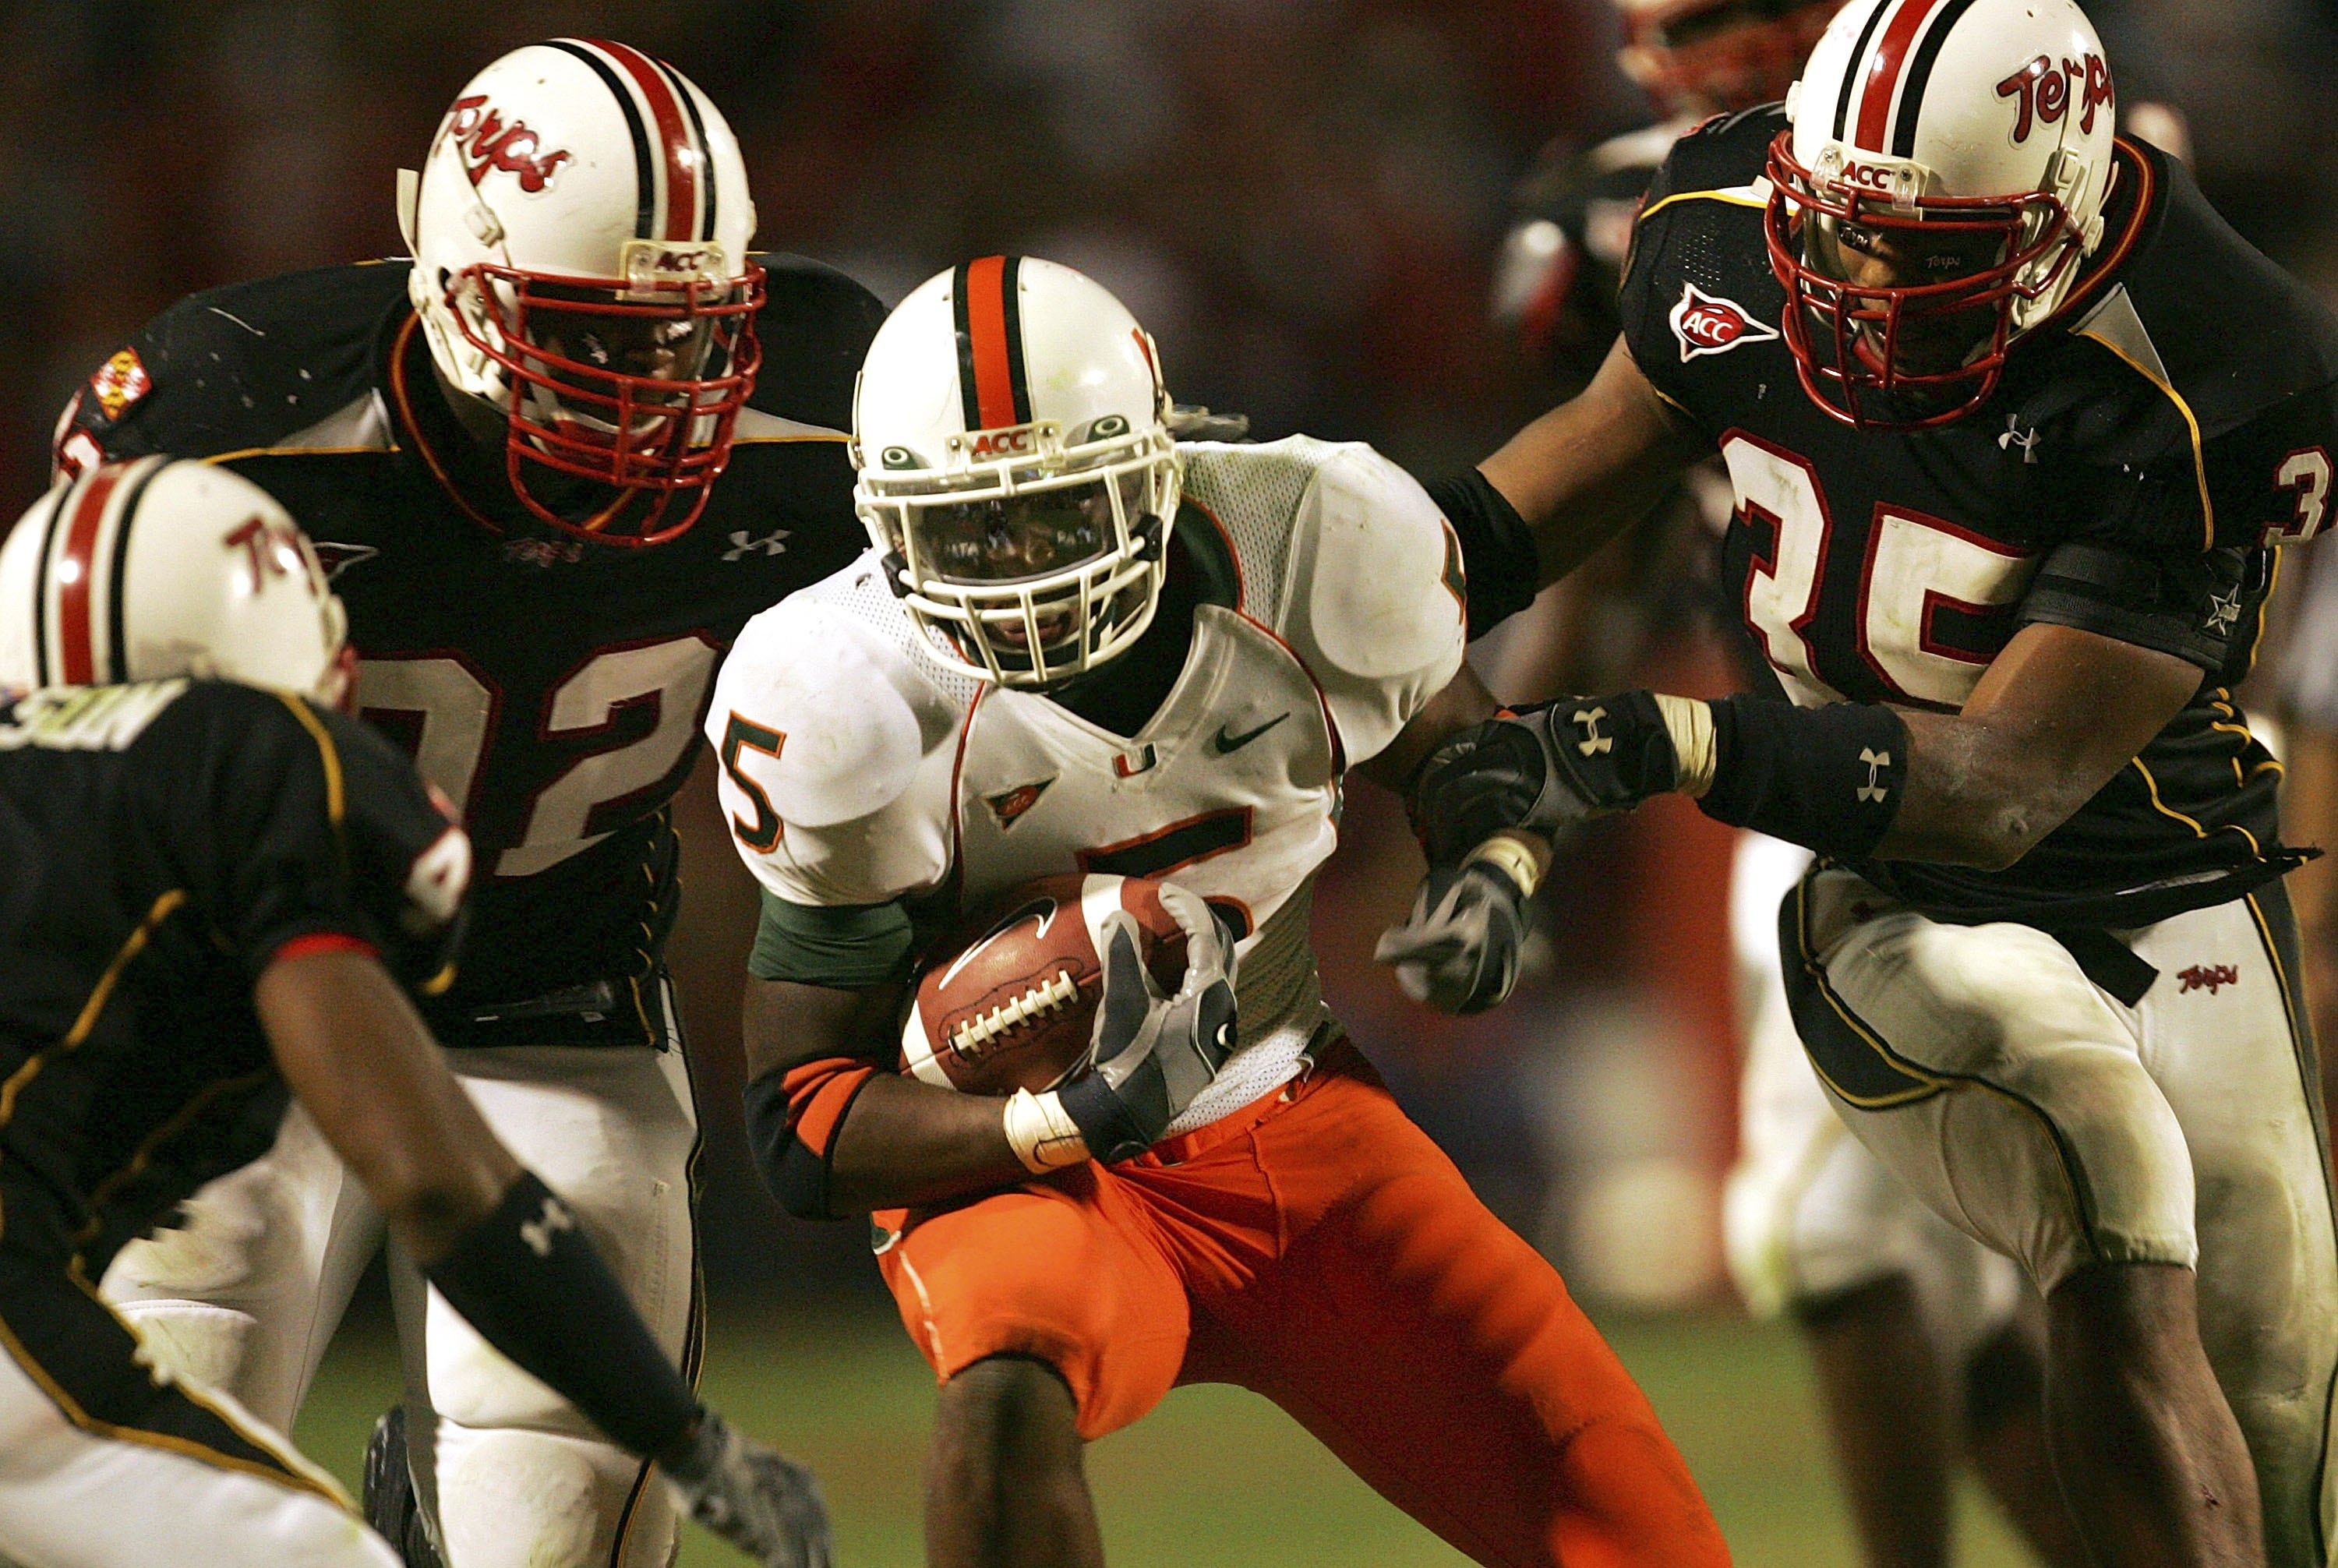 COLLEGE PARK, MD - NOVEMBER 11:  Javarris James #5 of the Miami Hurricanes carries the ball as the Maryland Terrapins defend during the game on November 11, 2006 at Byrd Stadium in College Park, Maryland.  (Photo by Jamie Squire/Getty Images)